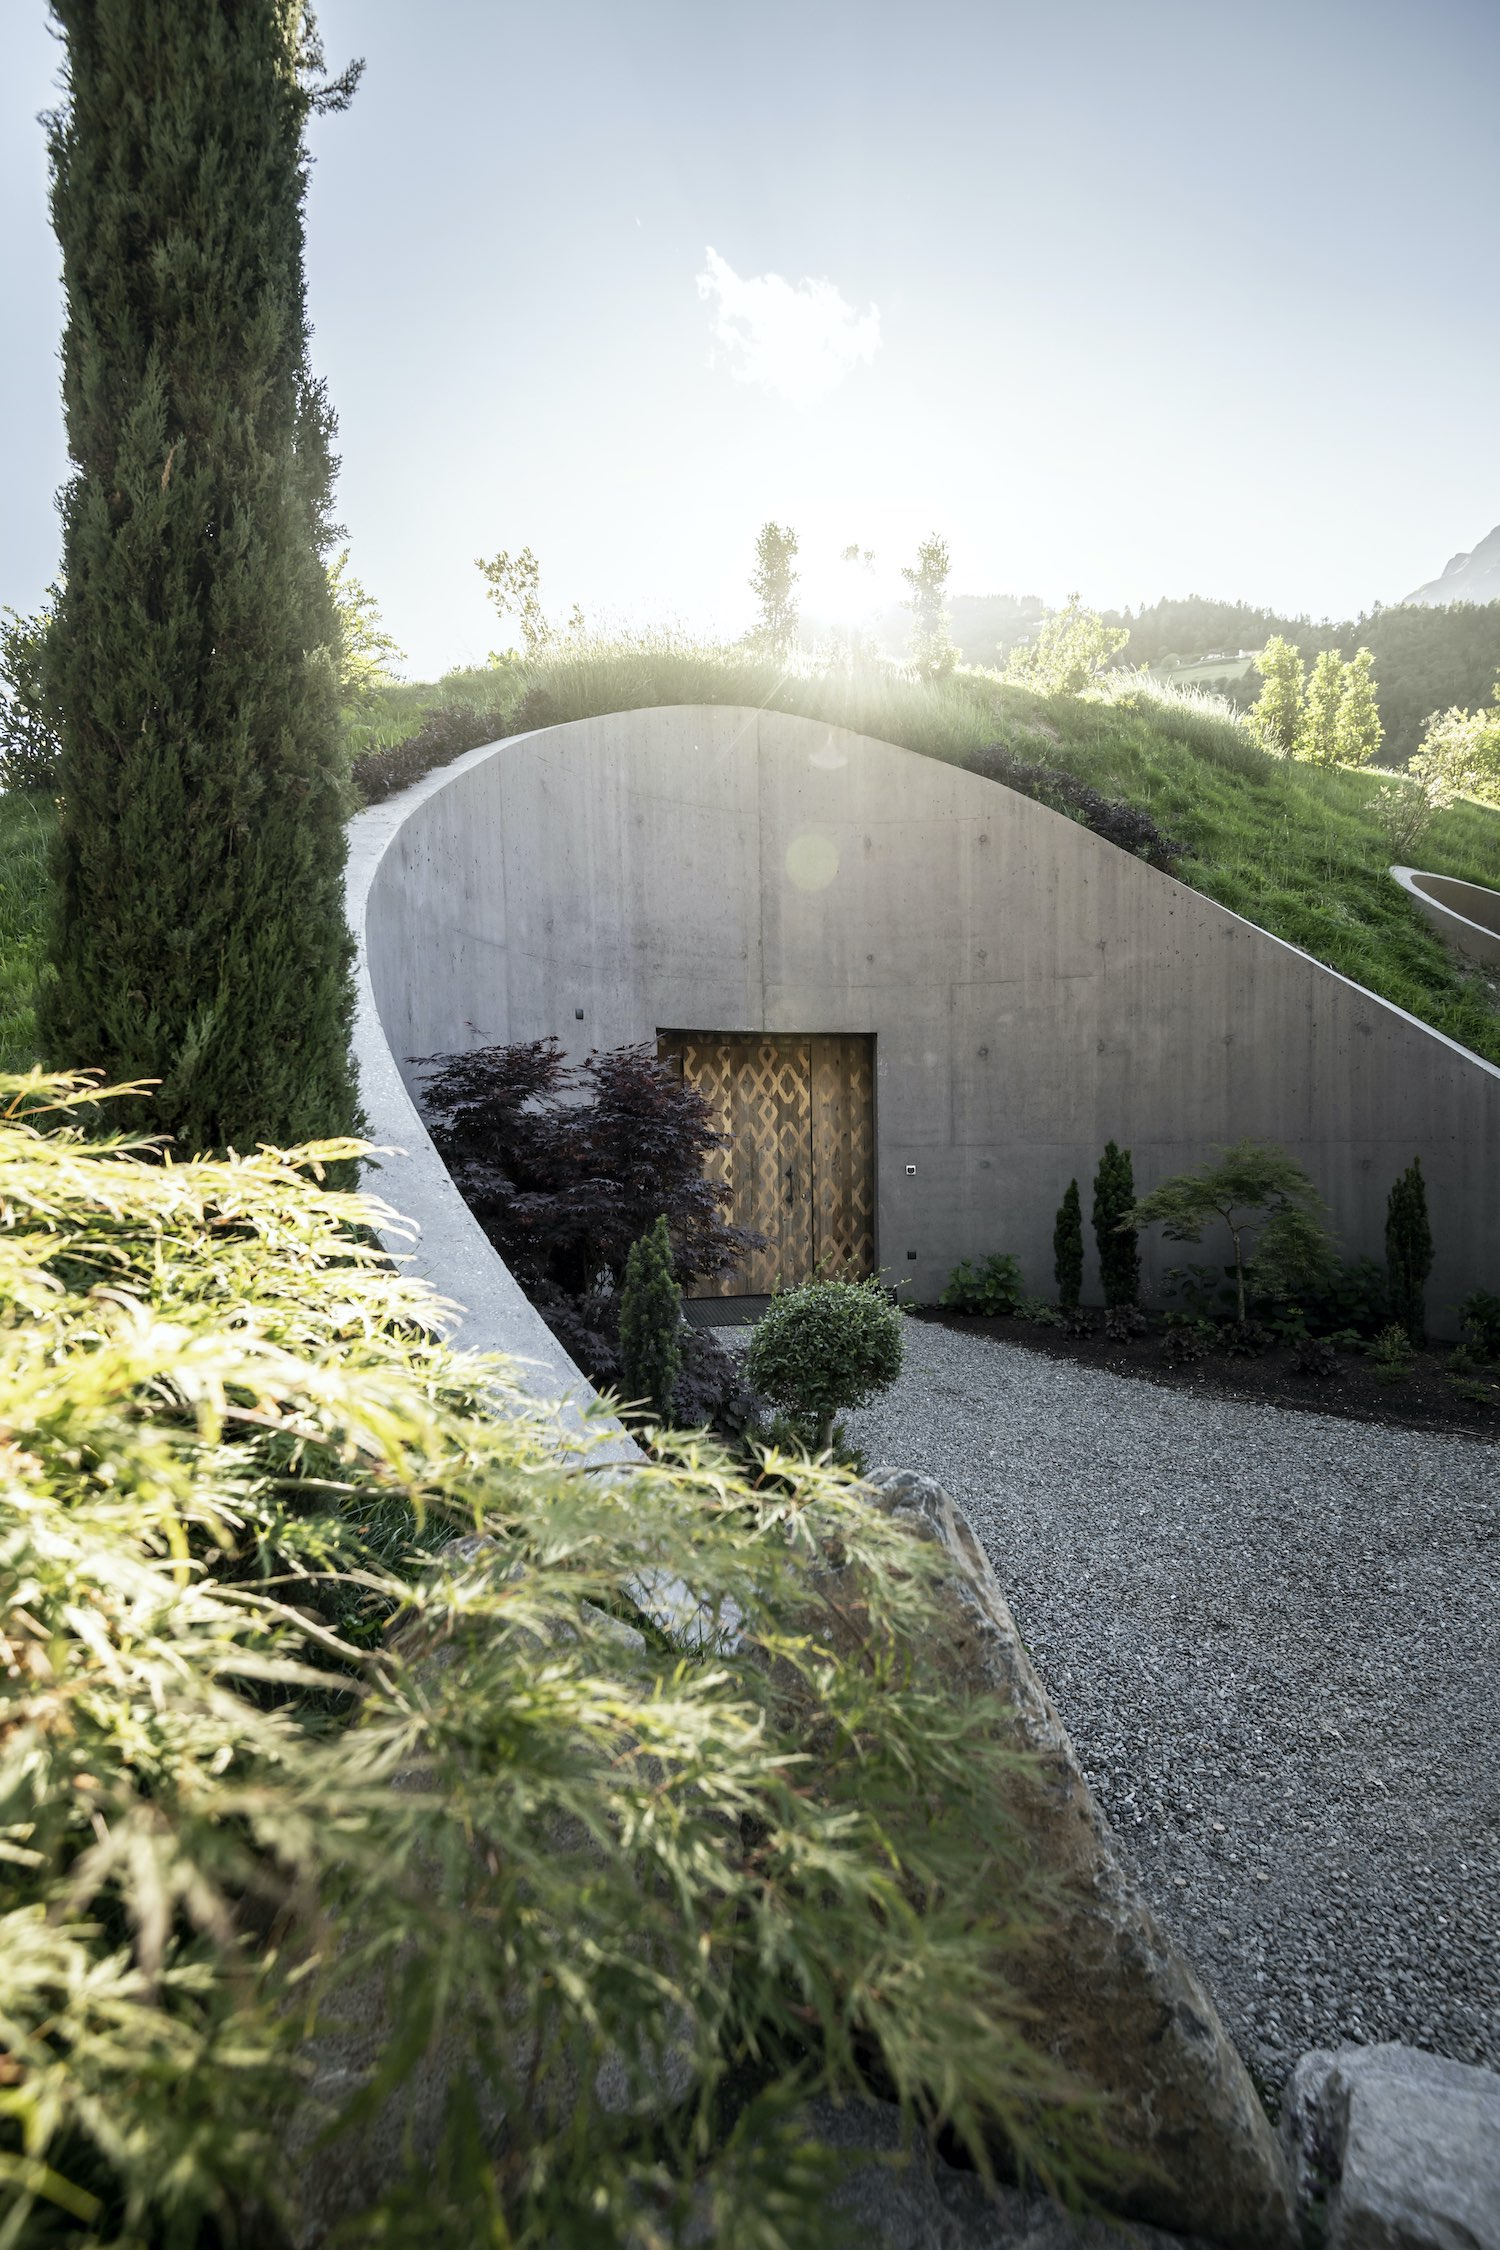 Apfelhotel Torgglerhof in  South Tyrol, Italy by noa* network of architecture